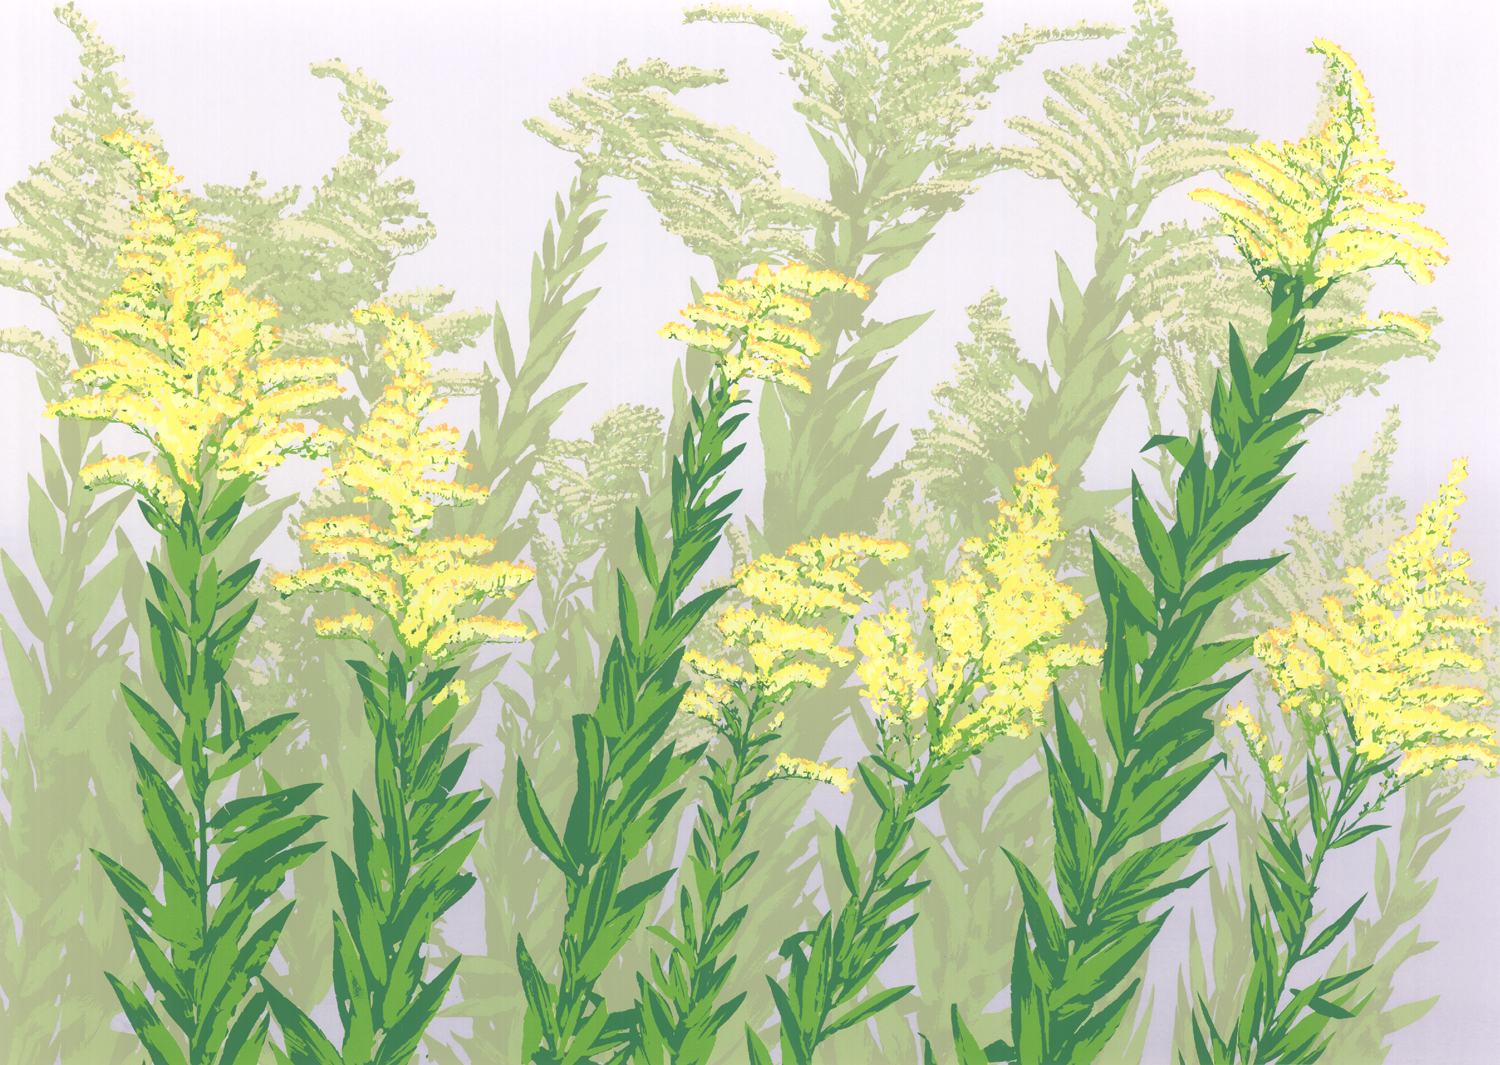 "161   Goldenrods   17.5"" x 20-24"" – 445 x 610mm 8 colors 30 edition / 7 available $450"